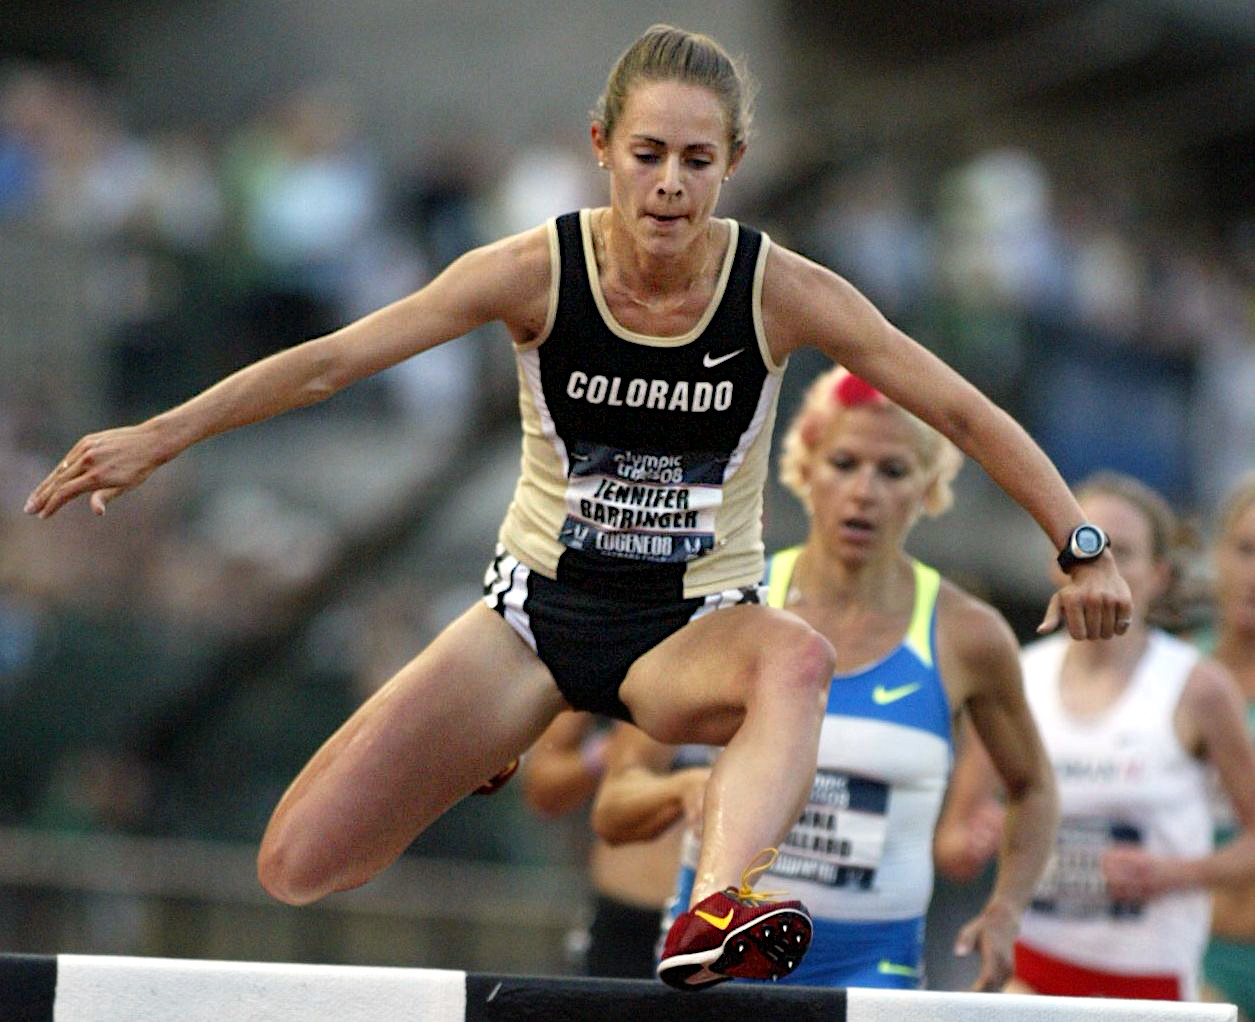 The 31-year old daughter of father (?) and mother(?) Jenny Simpson in 2018 photo. Jenny Simpson earned a  million dollar salary - leaving the net worth at 0.2 million in 2018